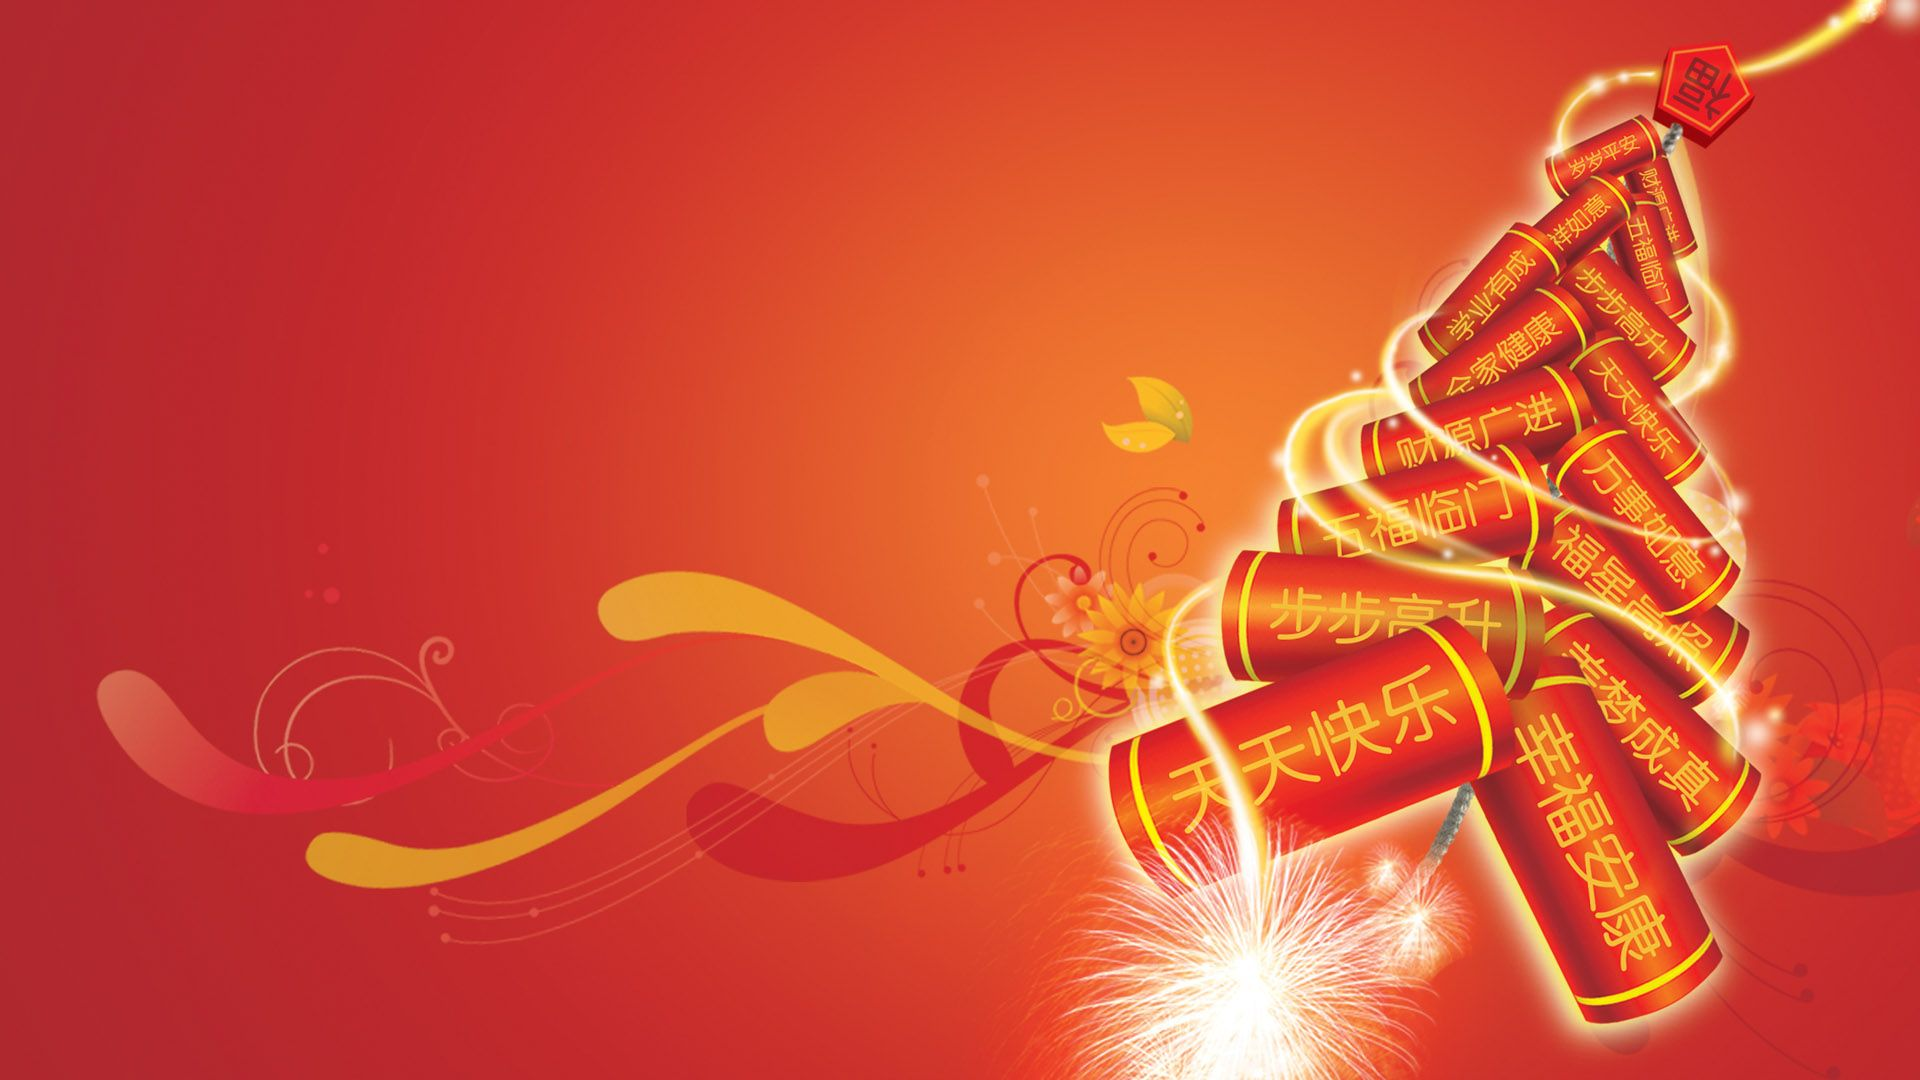 chinese happy new year desktop wallpapers 2017   chinese new year